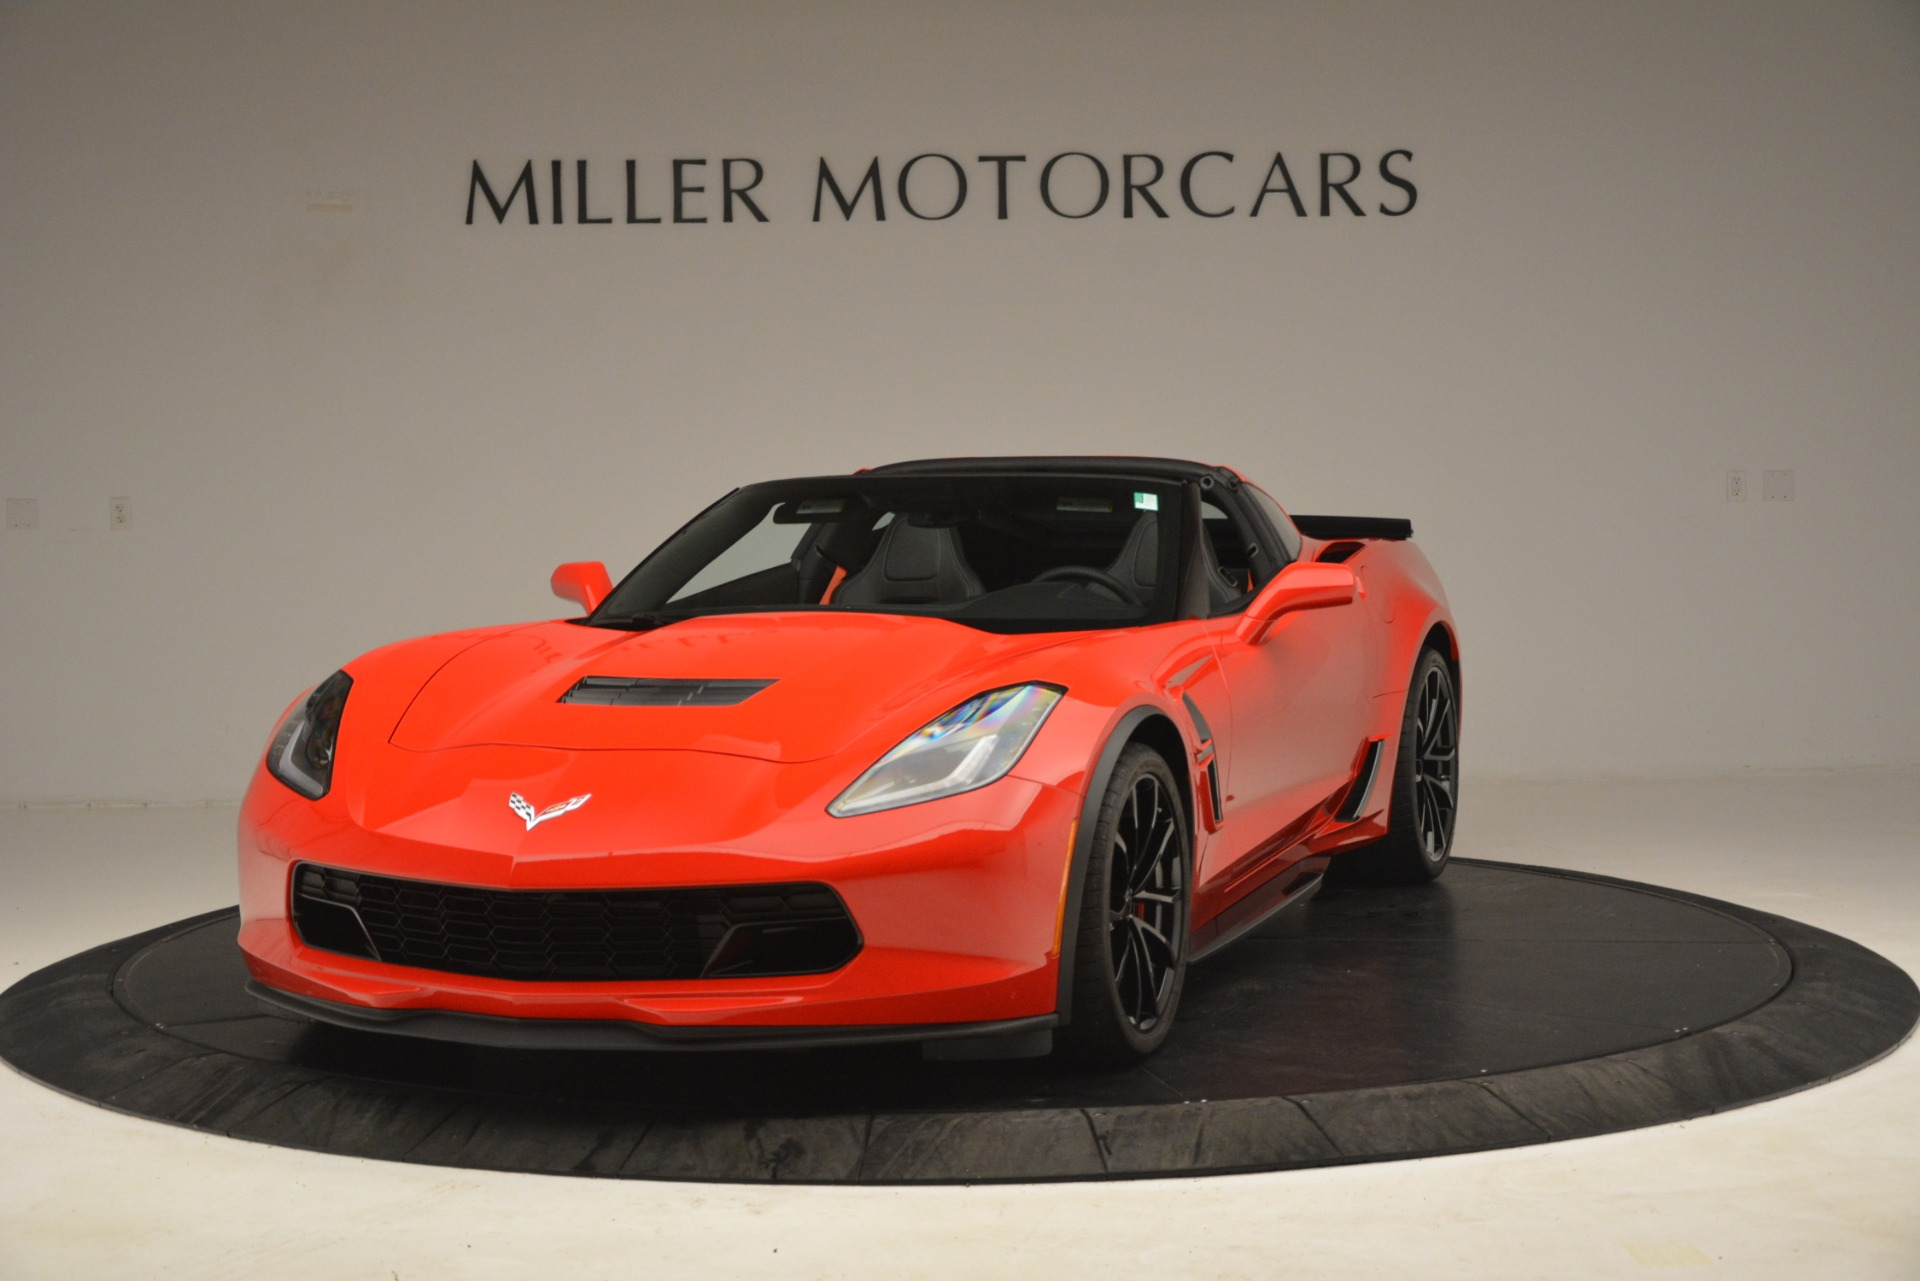 Used 2019 Chevrolet Corvette Grand Sport for sale Sold at Aston Martin of Greenwich in Greenwich CT 06830 1